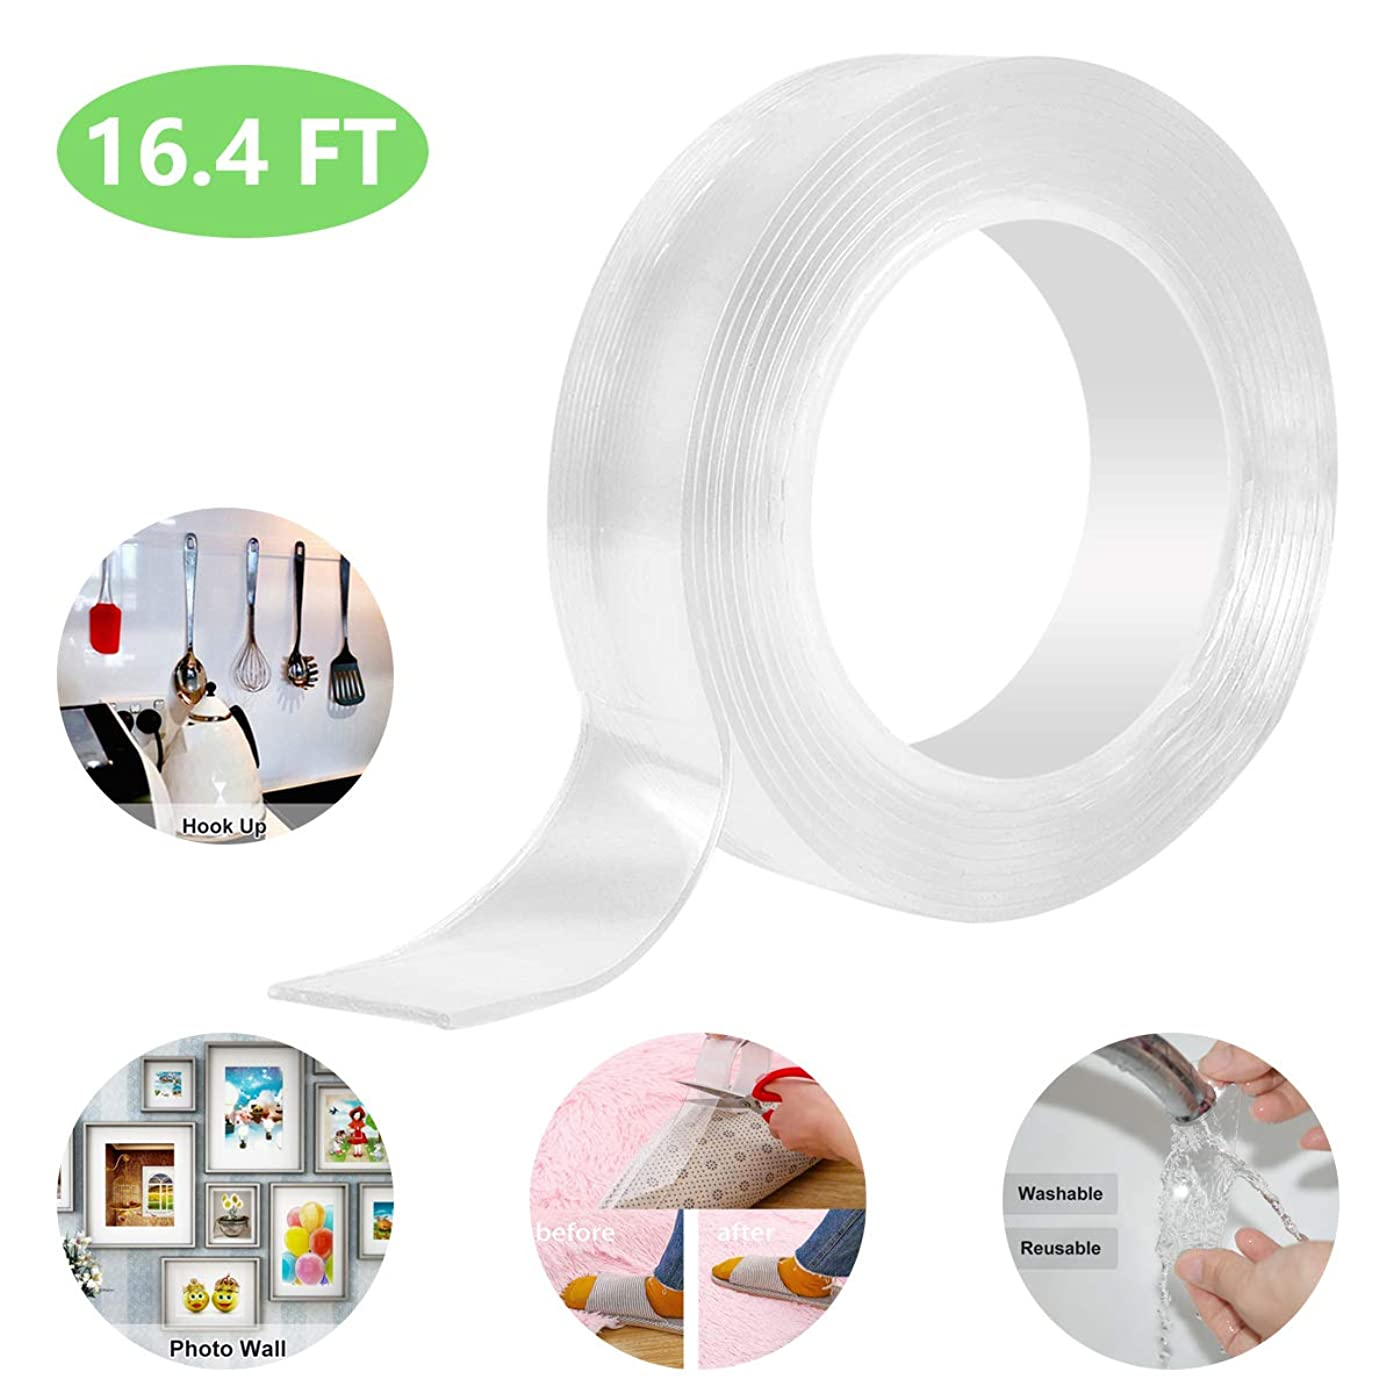 Traceless Tape Reusable Double Sided Adhesive Tape Removable Washable Nano Clear Anti Slip Gel Tape for Kitchen Photos Cabinets Carpet Glass Metal Tile (5M/16.4Ft)